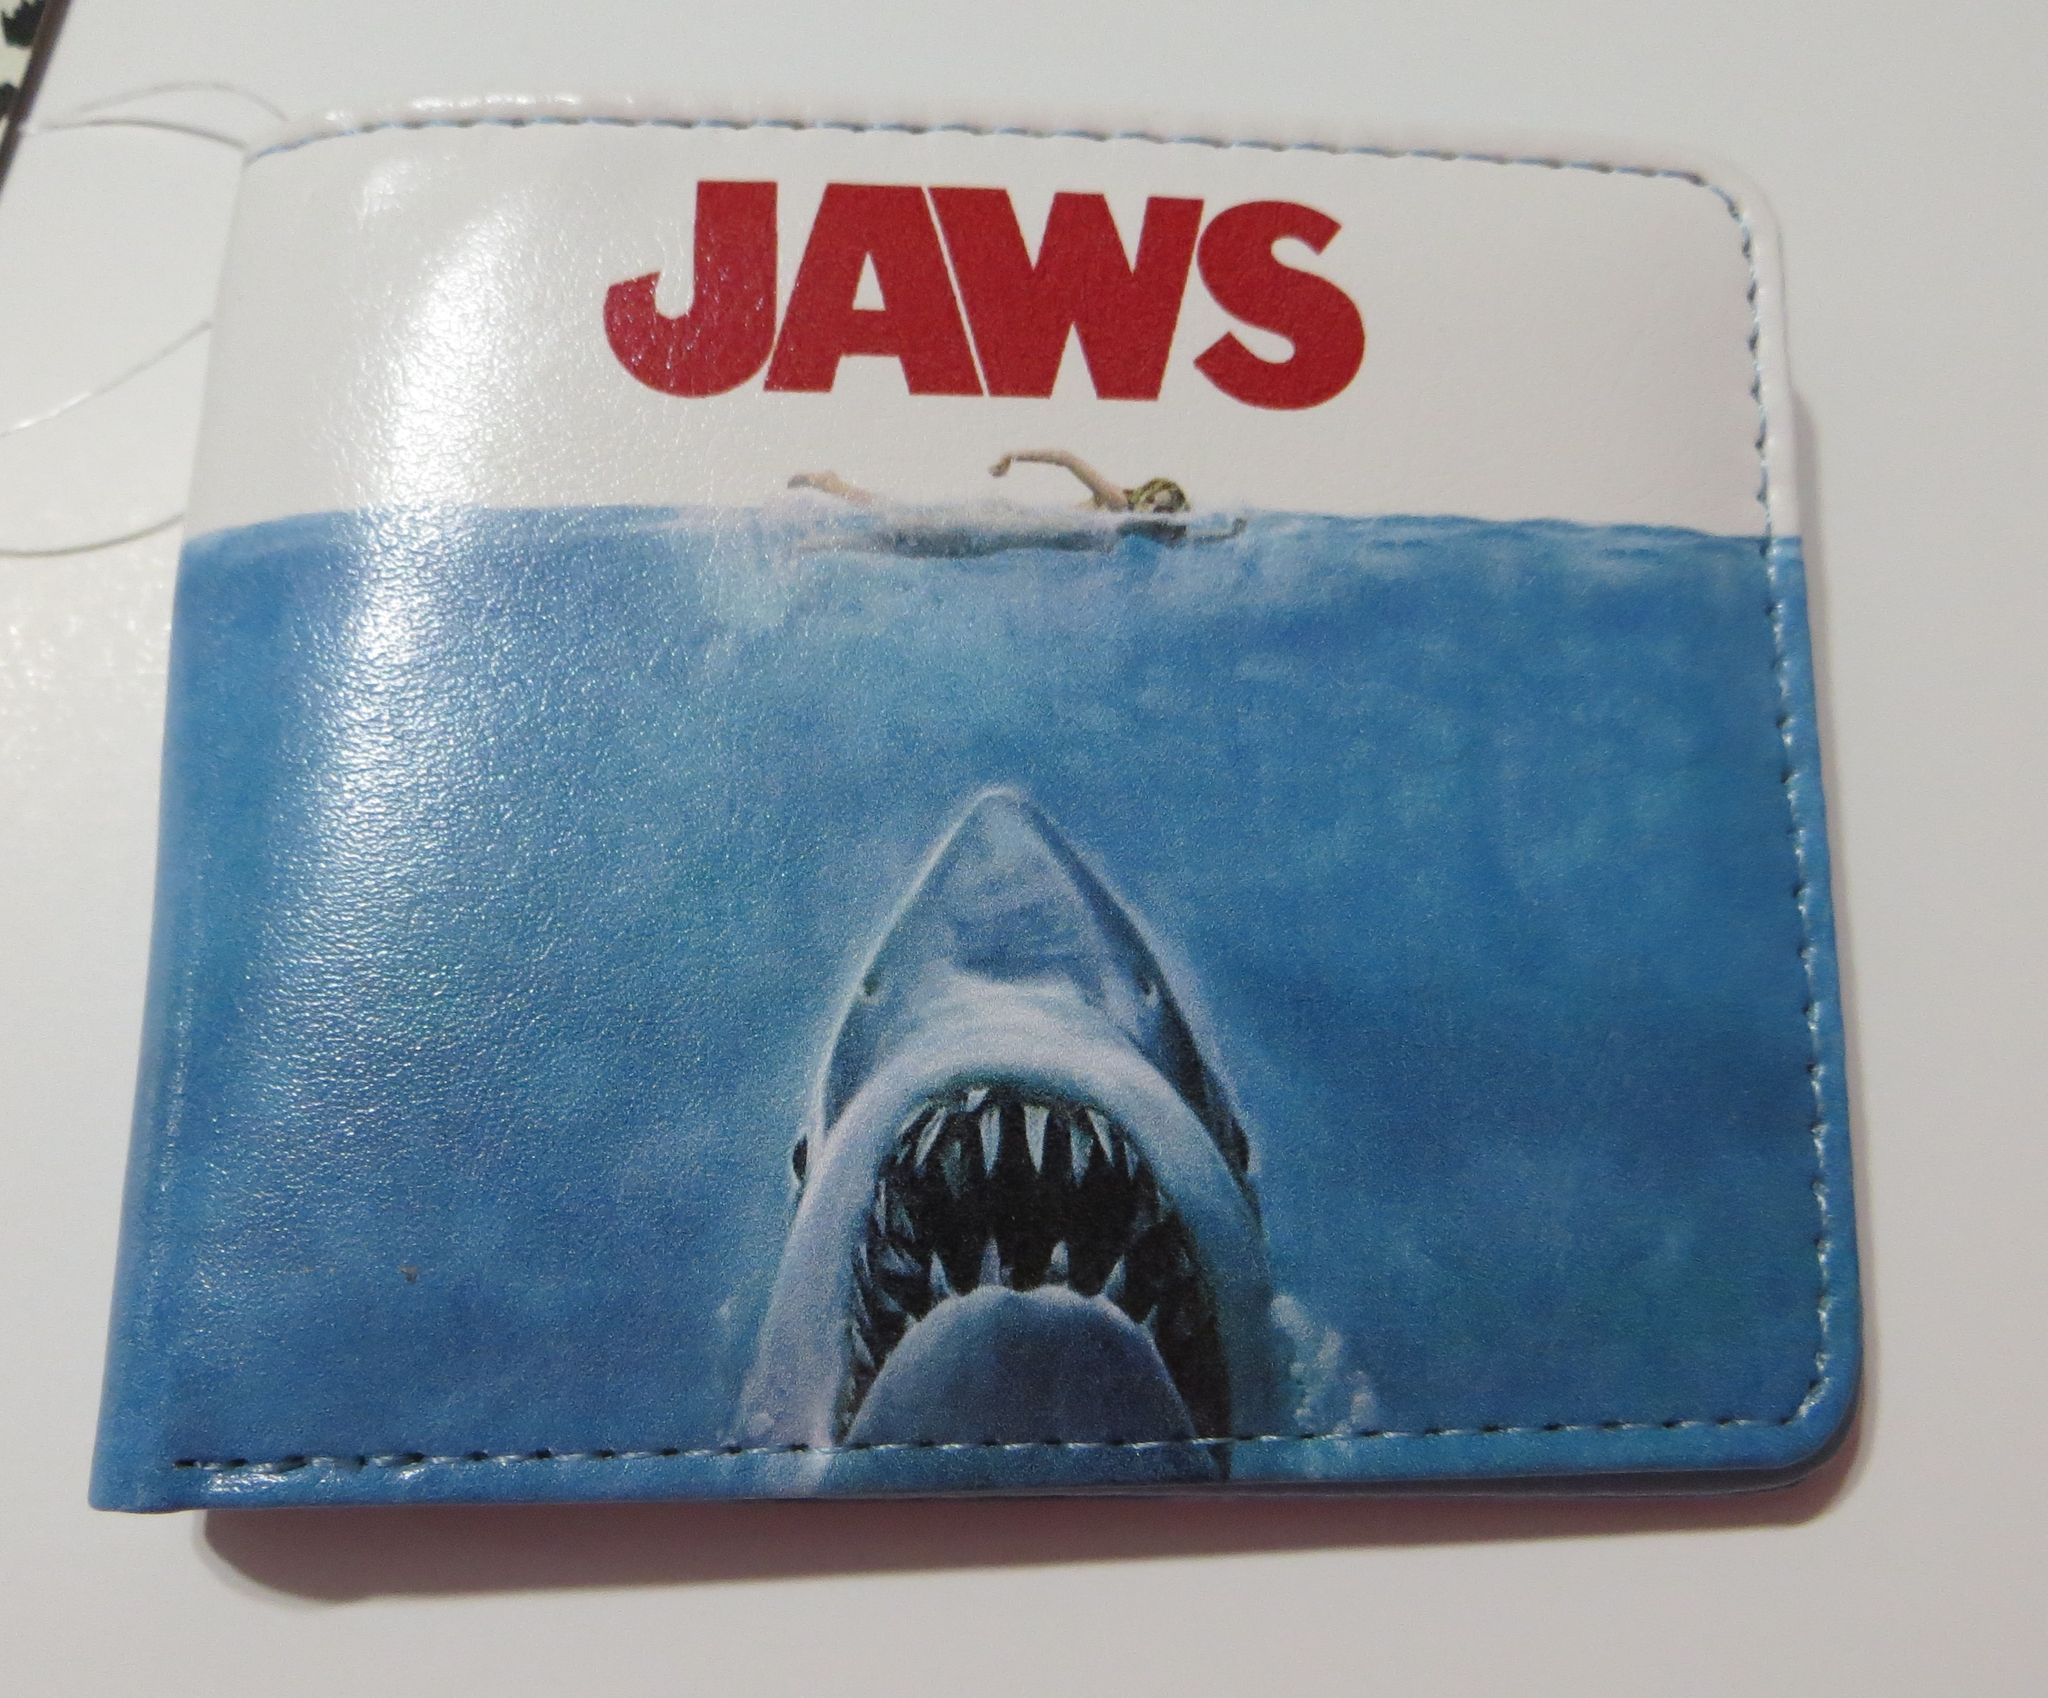 Jaws Men's BiFold Wallet Available at Nerdimports.com